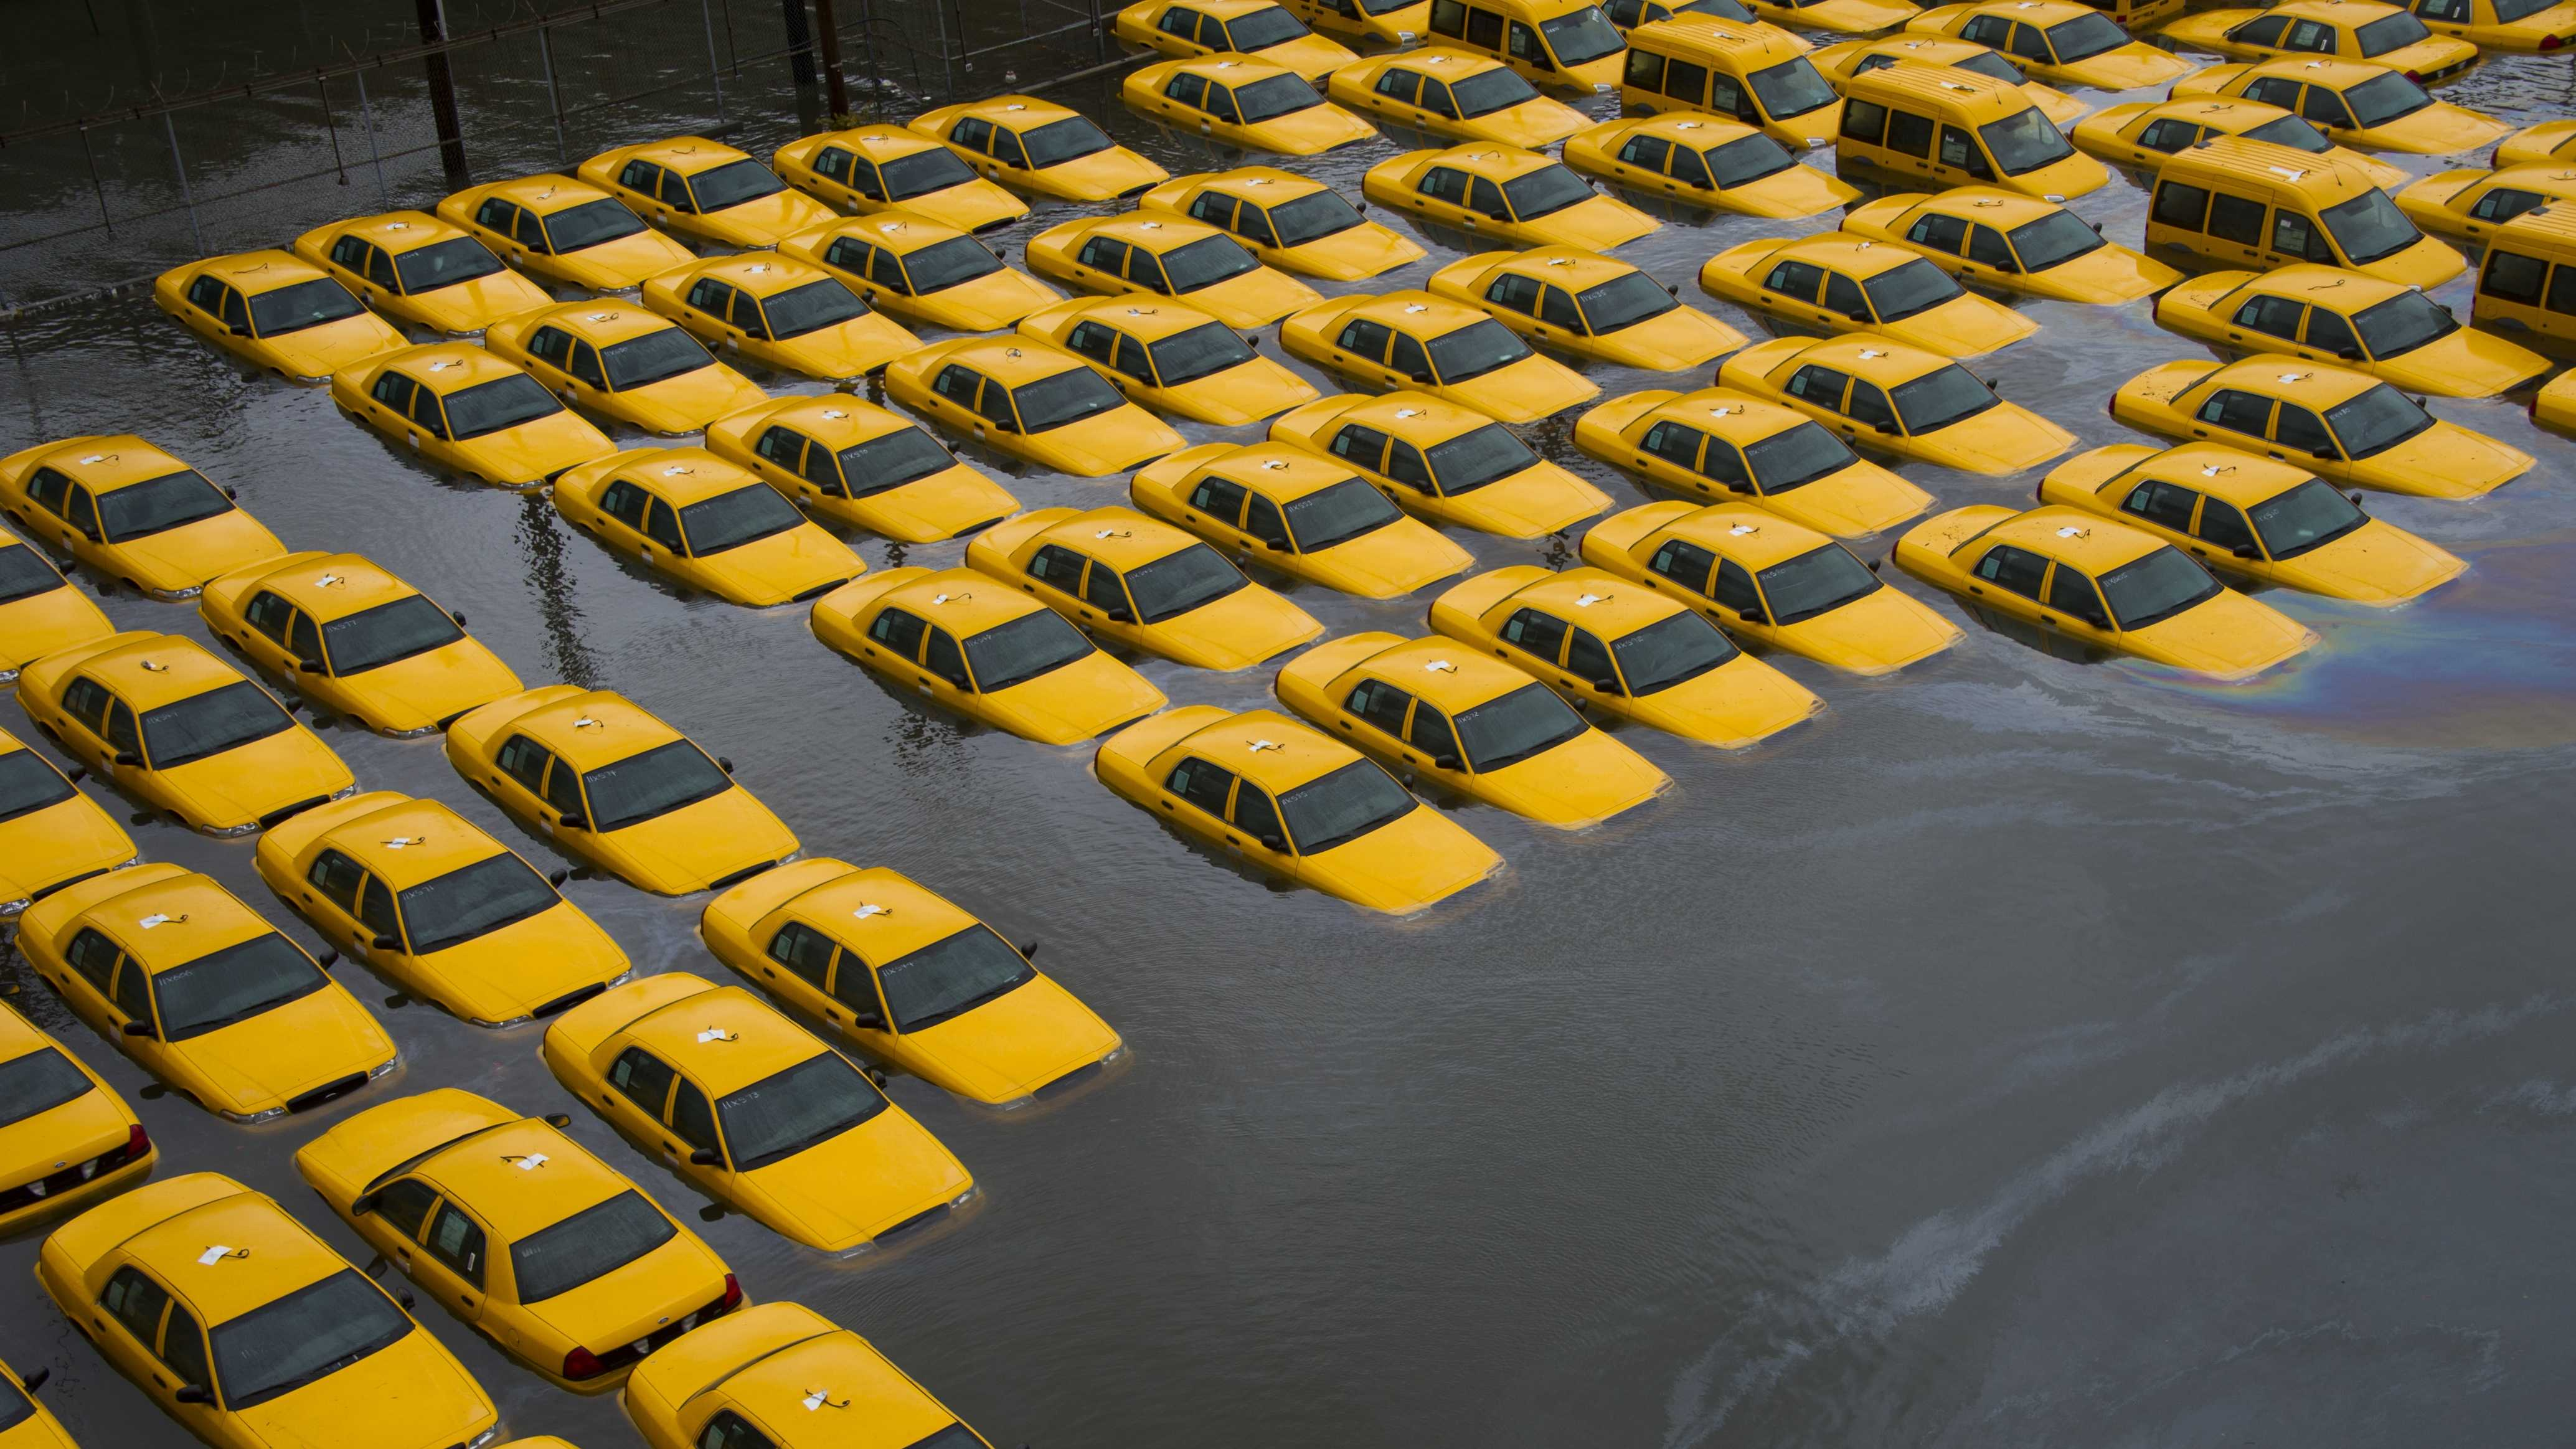 AP - Yellow Cabs Flooded